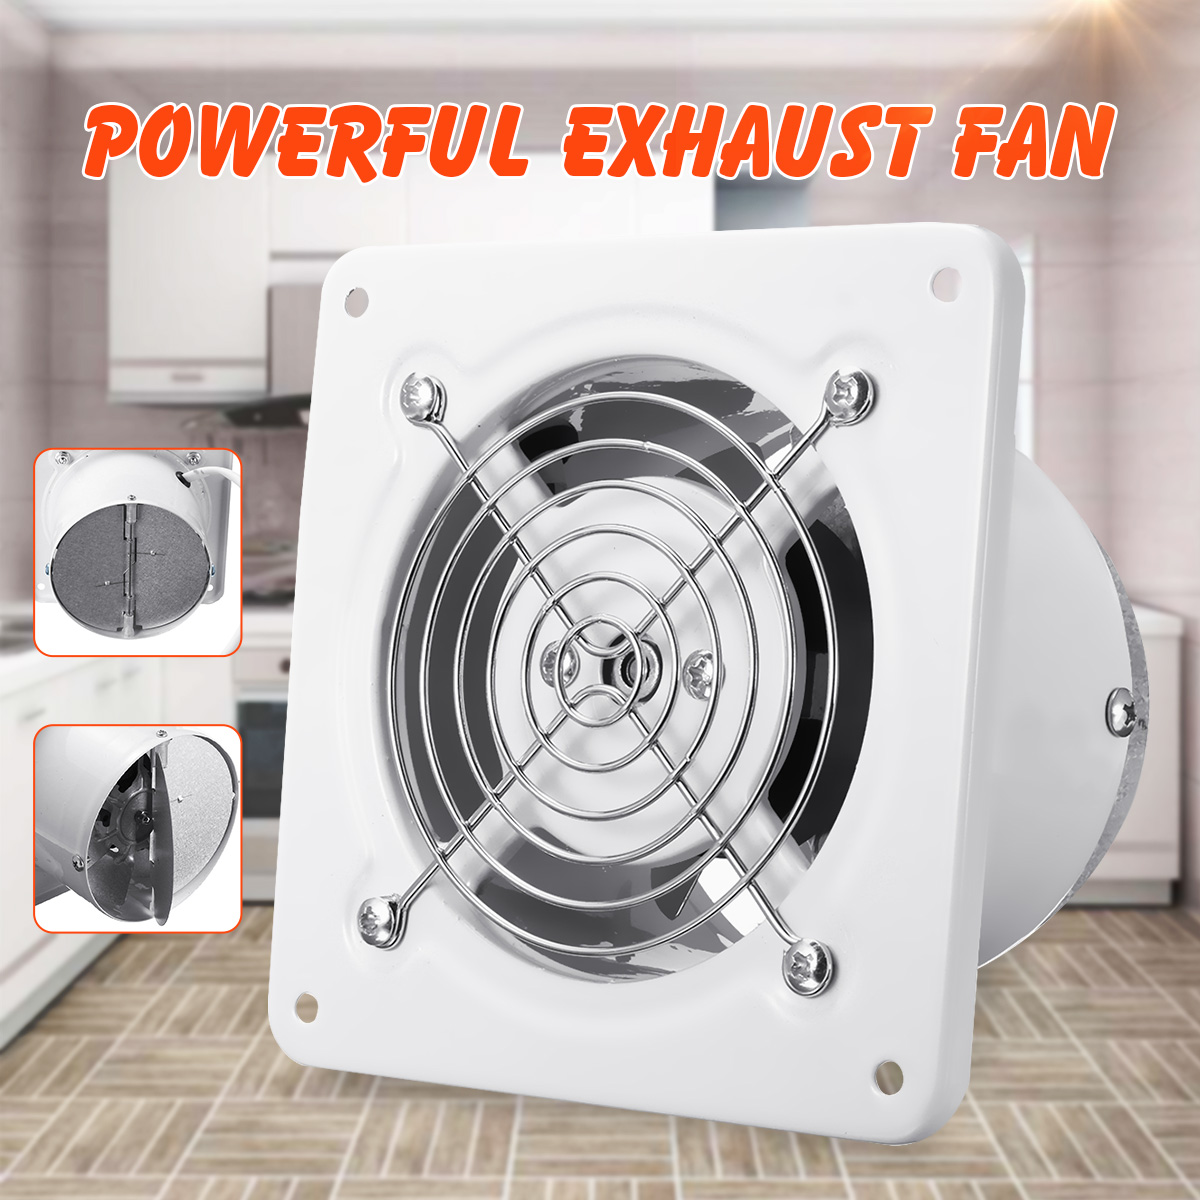 4 Inch 20w 220v Ventilator Extractor Exhaust Fans High Speed Boost Exhaust Fan Toilet Kitchen Bathroom Hanging Wall Window Glass